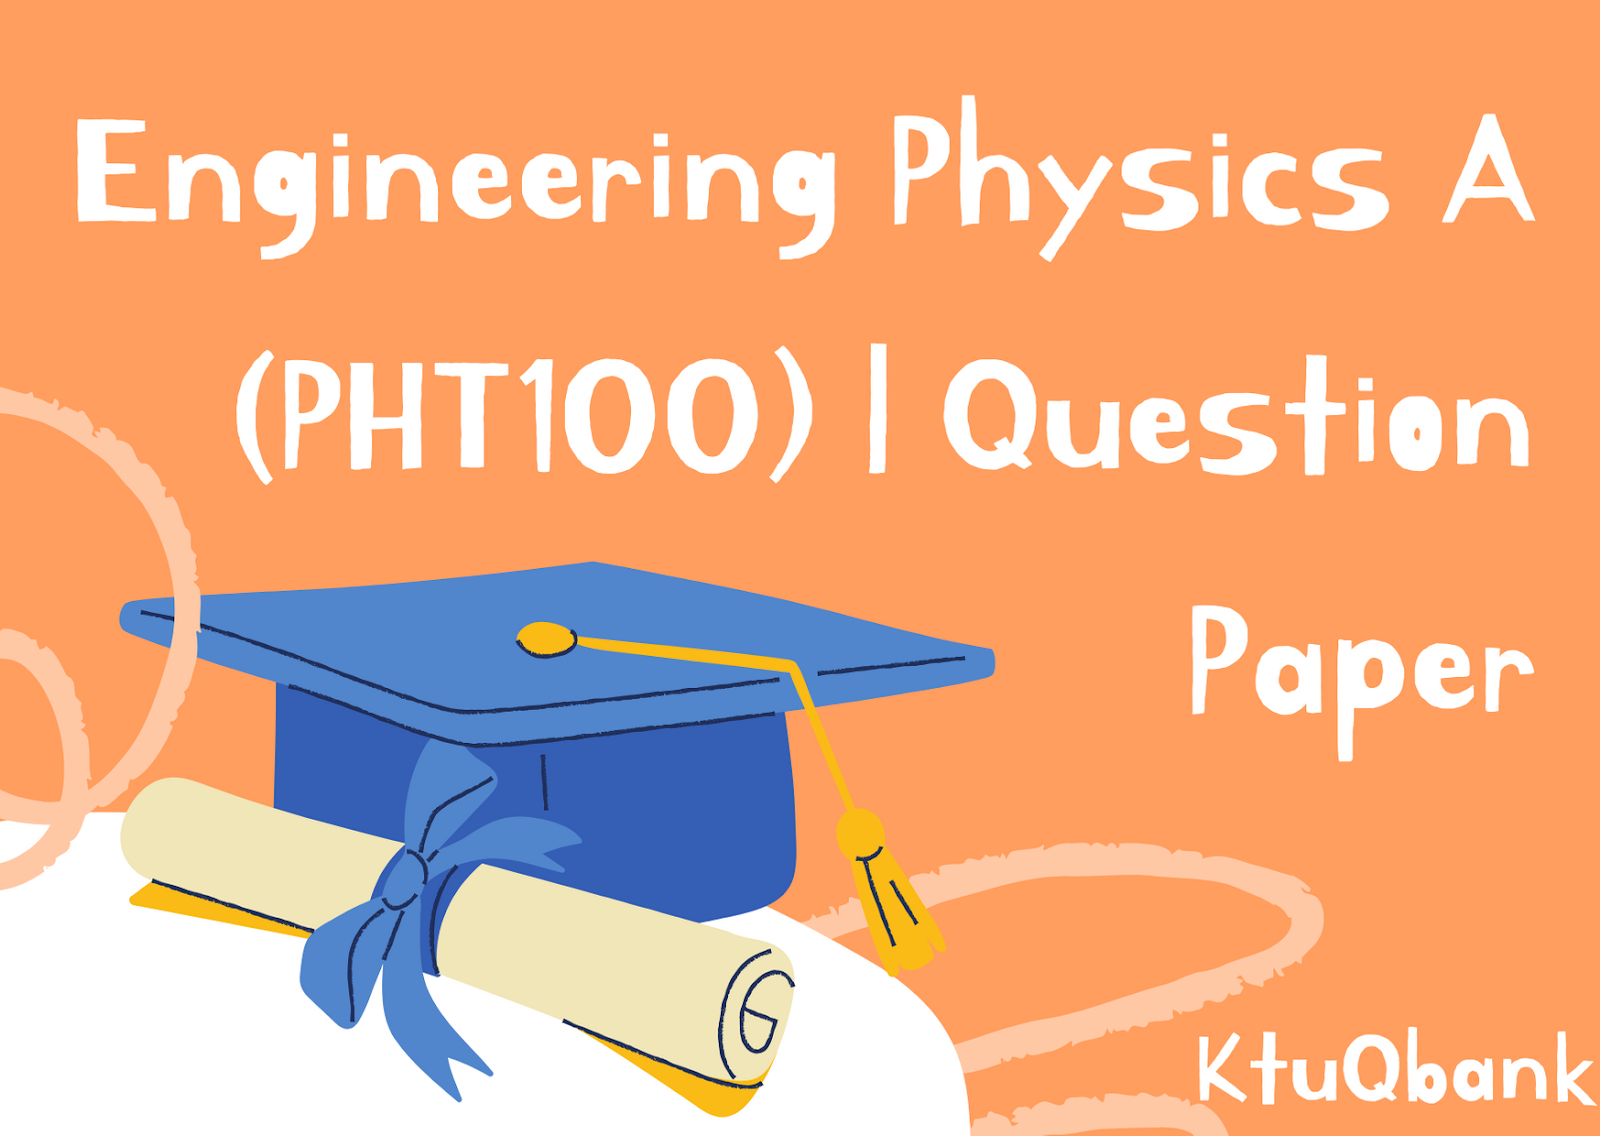 Engineering Physics A | PHT100 | Question Papers